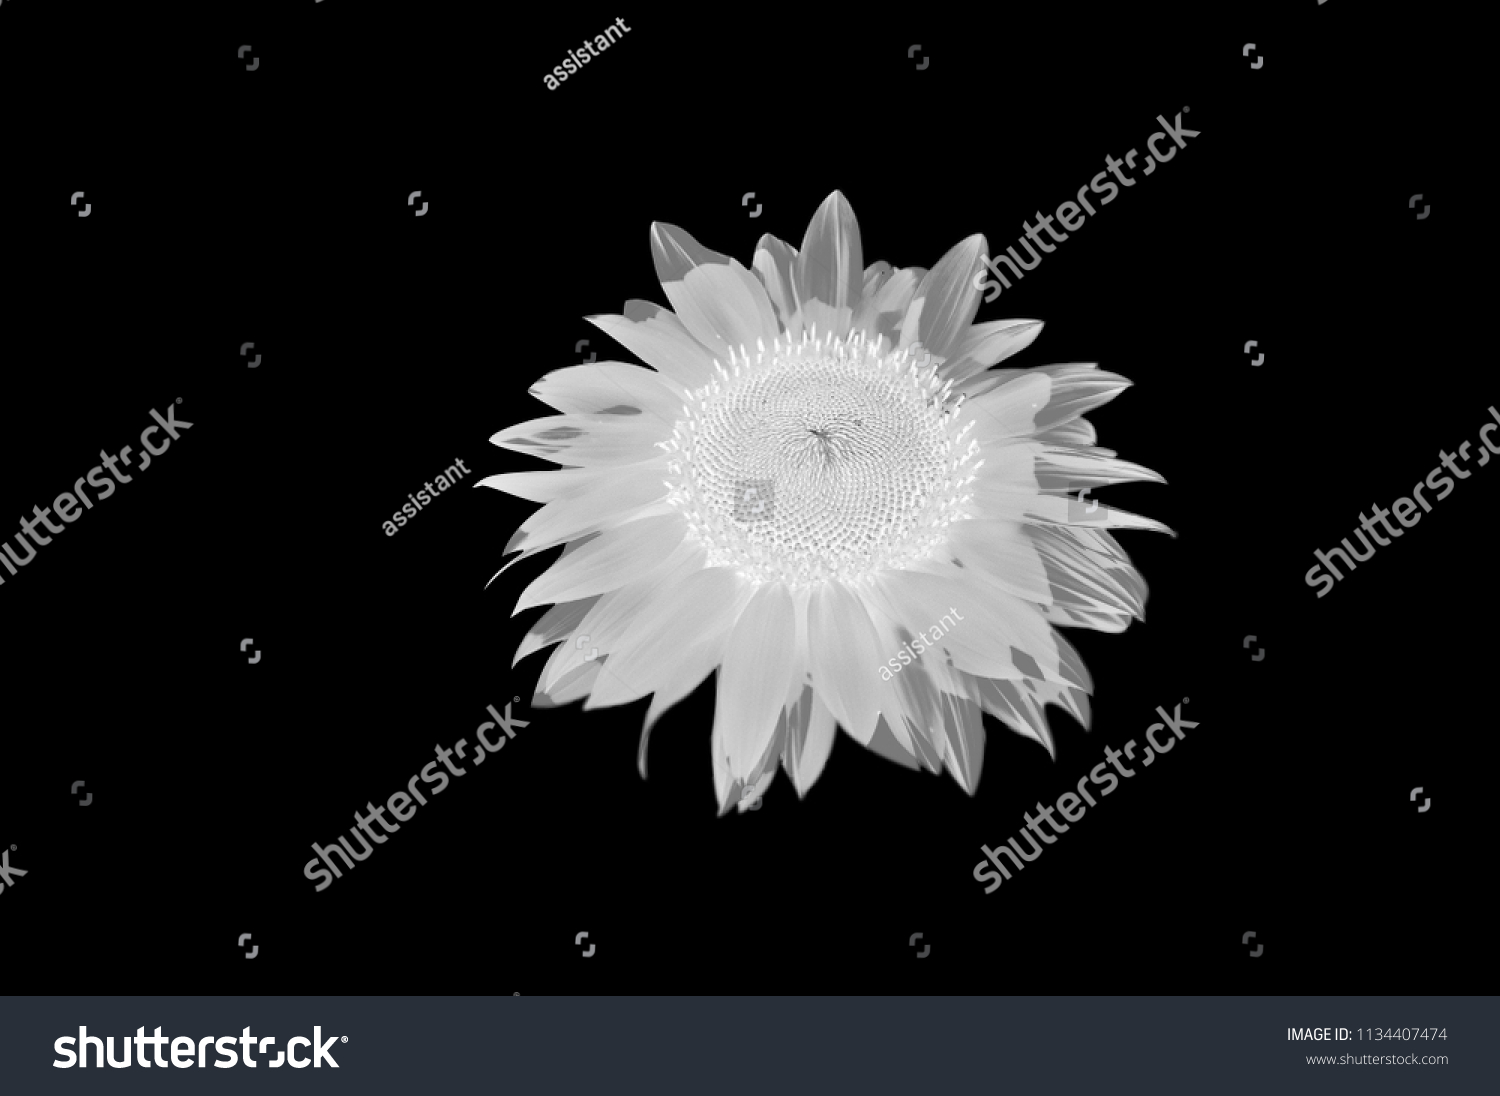 Black And White Sunflower Isolated Monochrome Flower On A Background For Typography